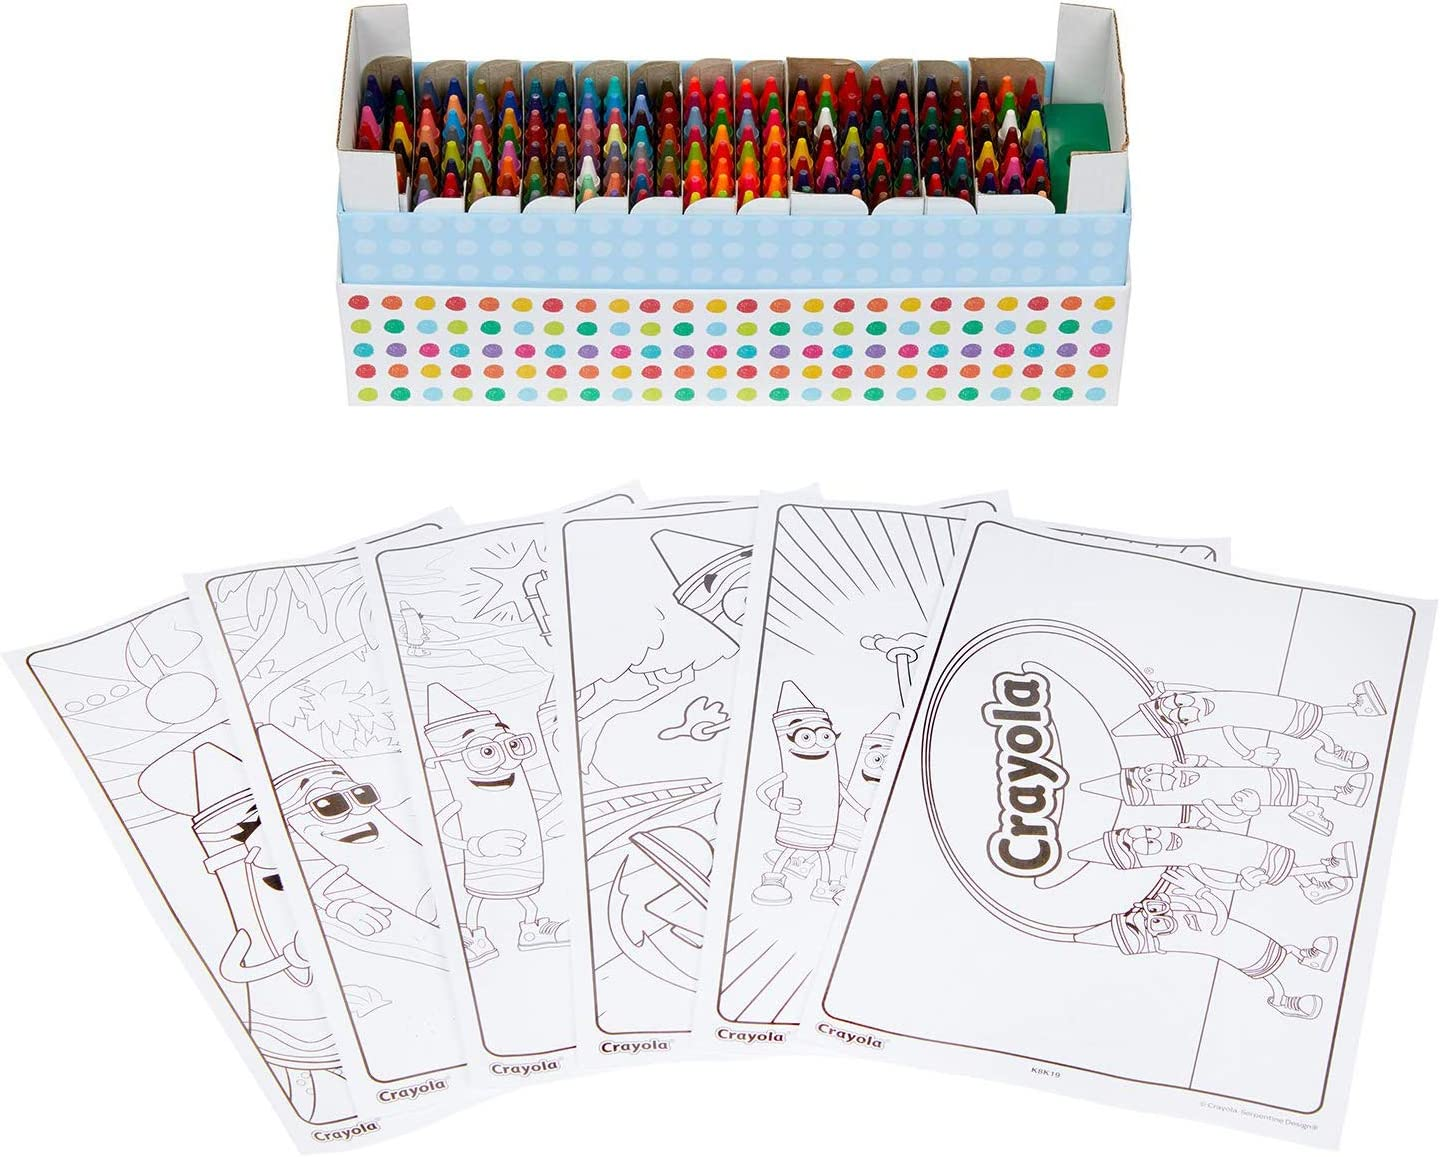 Crayola 208ct Crayon Set with Coloring Pages, Gift for Kids